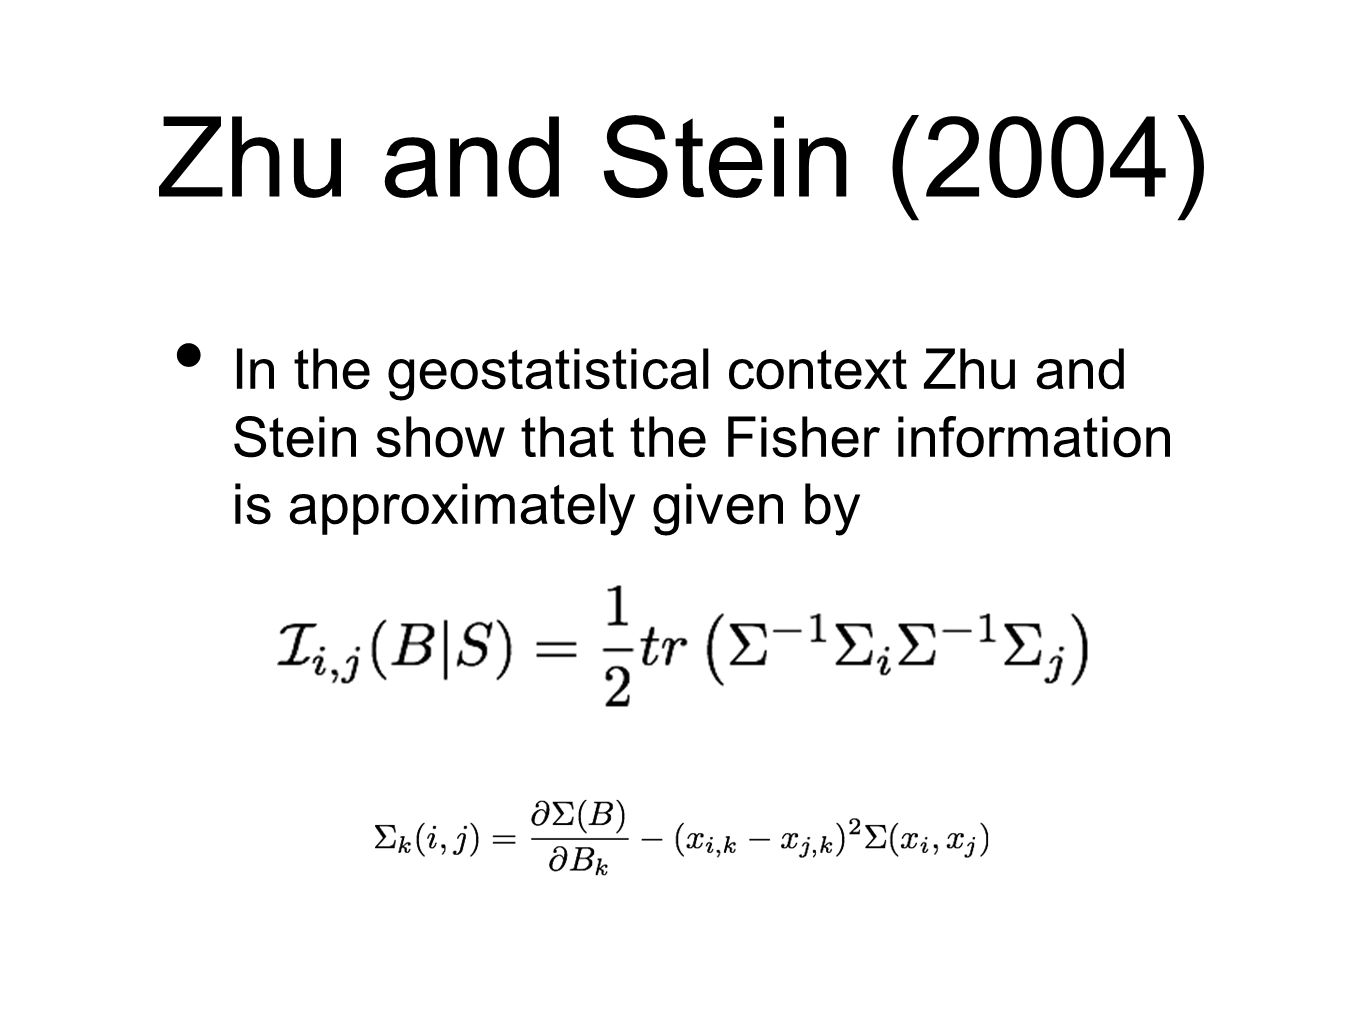 Zhu and Stein (2004) In the geostatistical context Zhu and Stein show that the Fisher information is approximately given by.